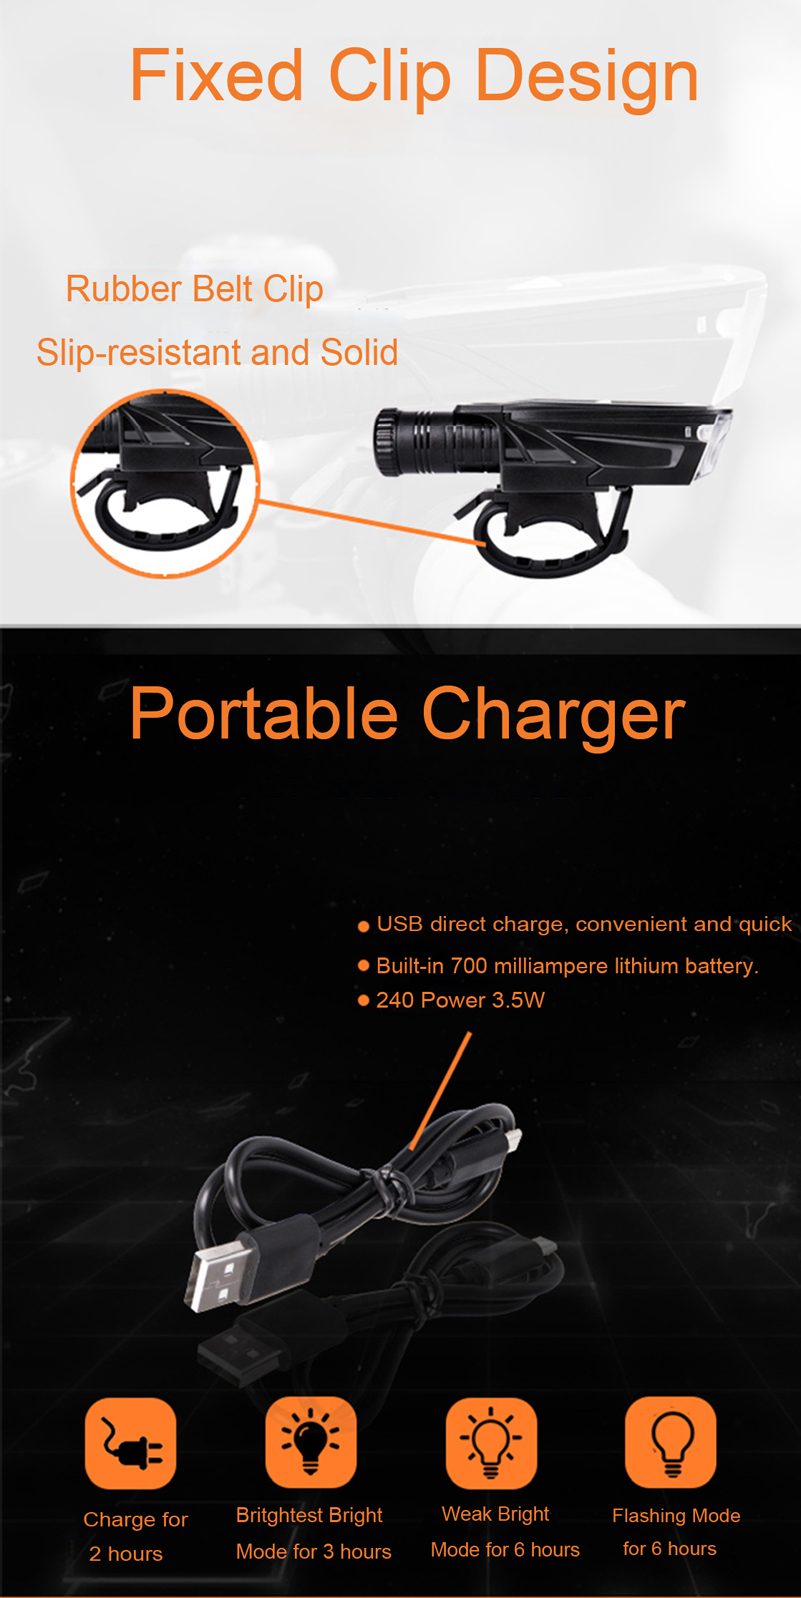 XANES XL15 450LM 3W Lamp Bead Waterproof 4 Modes 700mAh Battery USB Charging Bike Front Light